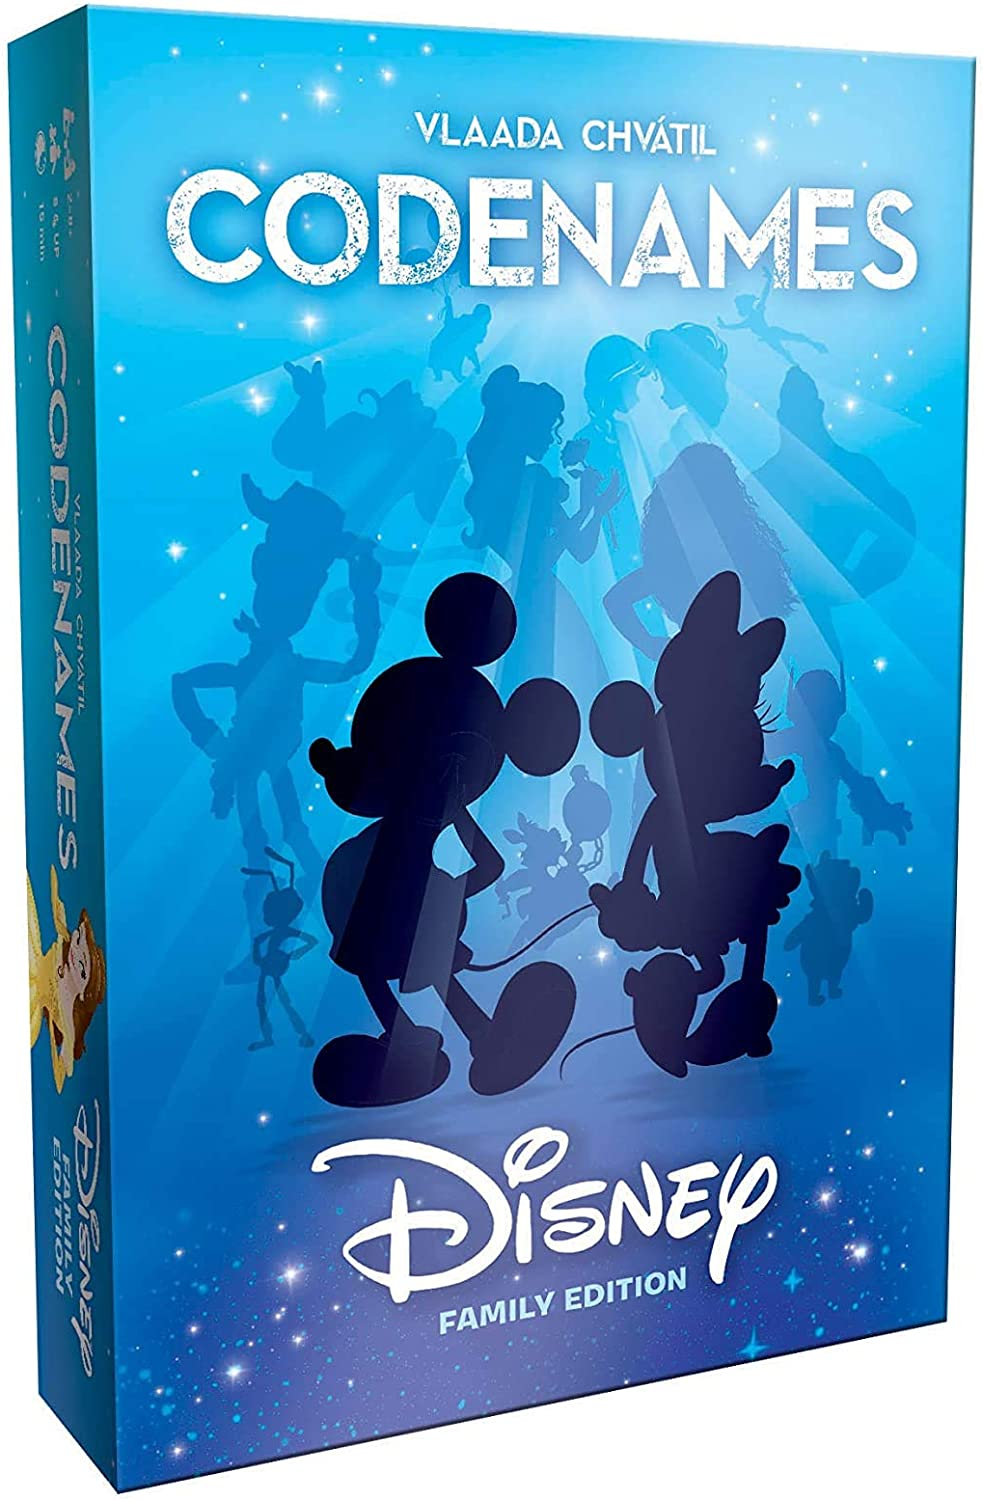 Codenames Disney Family Edition   Best Family Board Game, Great Game for All Ages   Featuring Disney Characters, Disney Artwork   Board Game for 2 Players or More   Perfect for Disney Fans